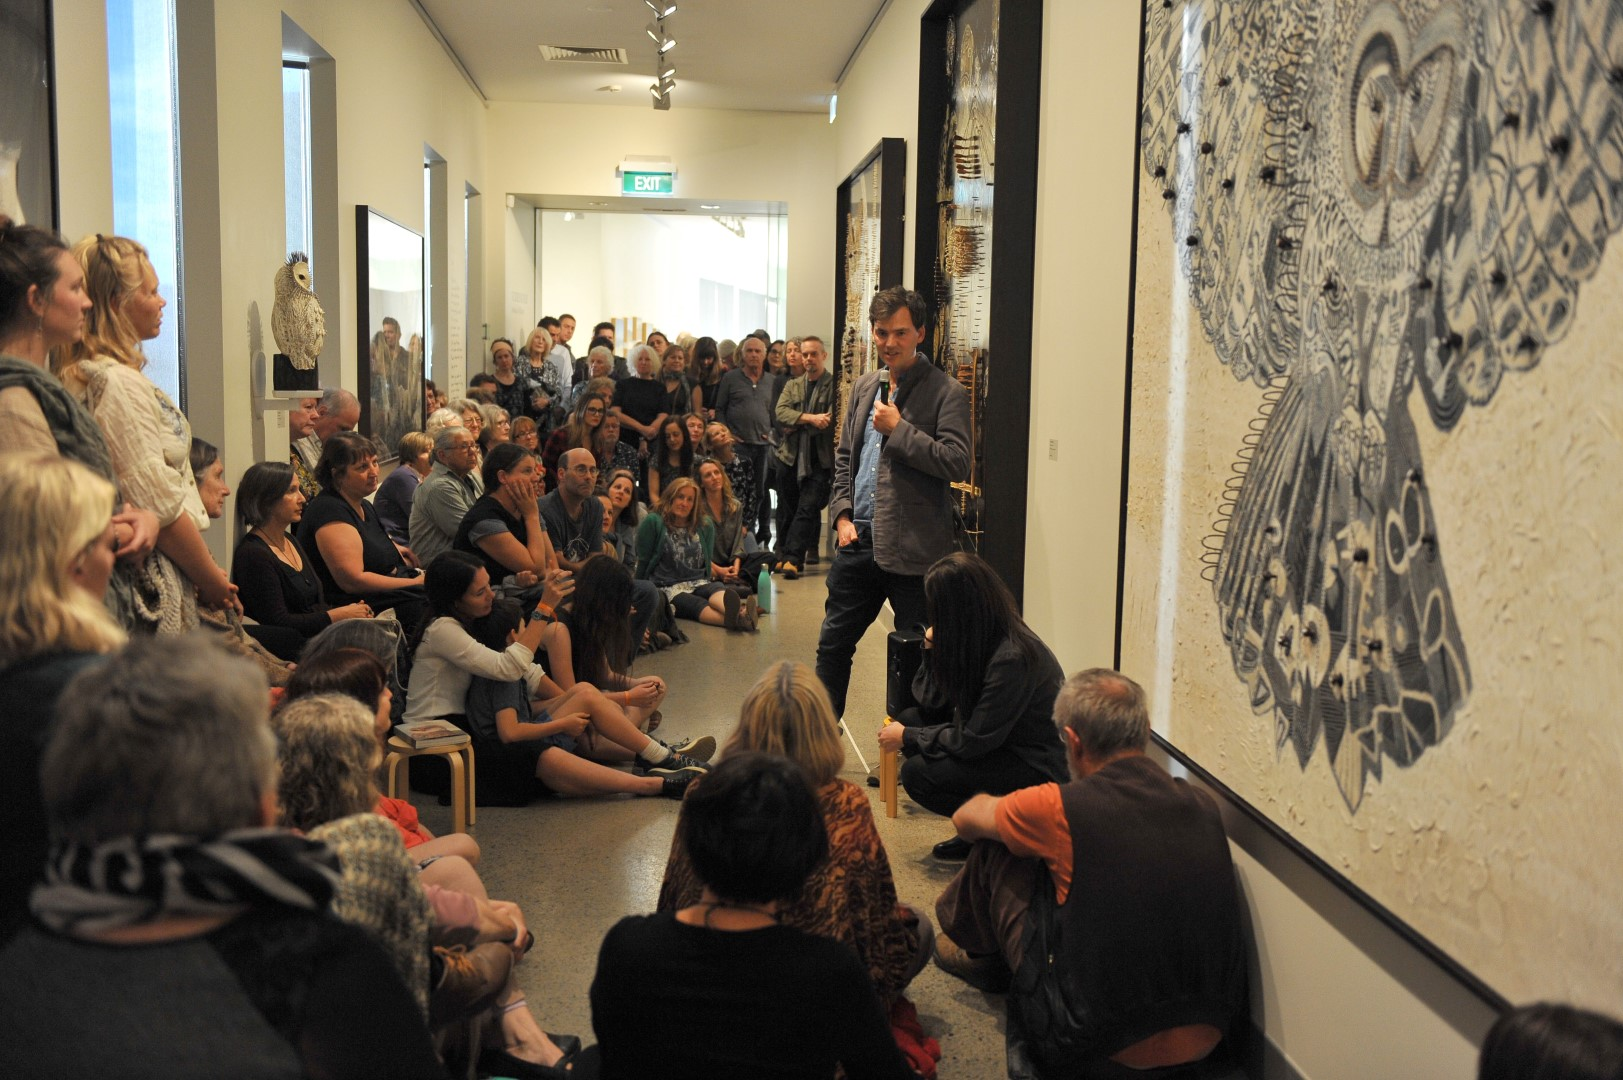 Yeldham giving a previous talk at Tweed Regional Gallery.